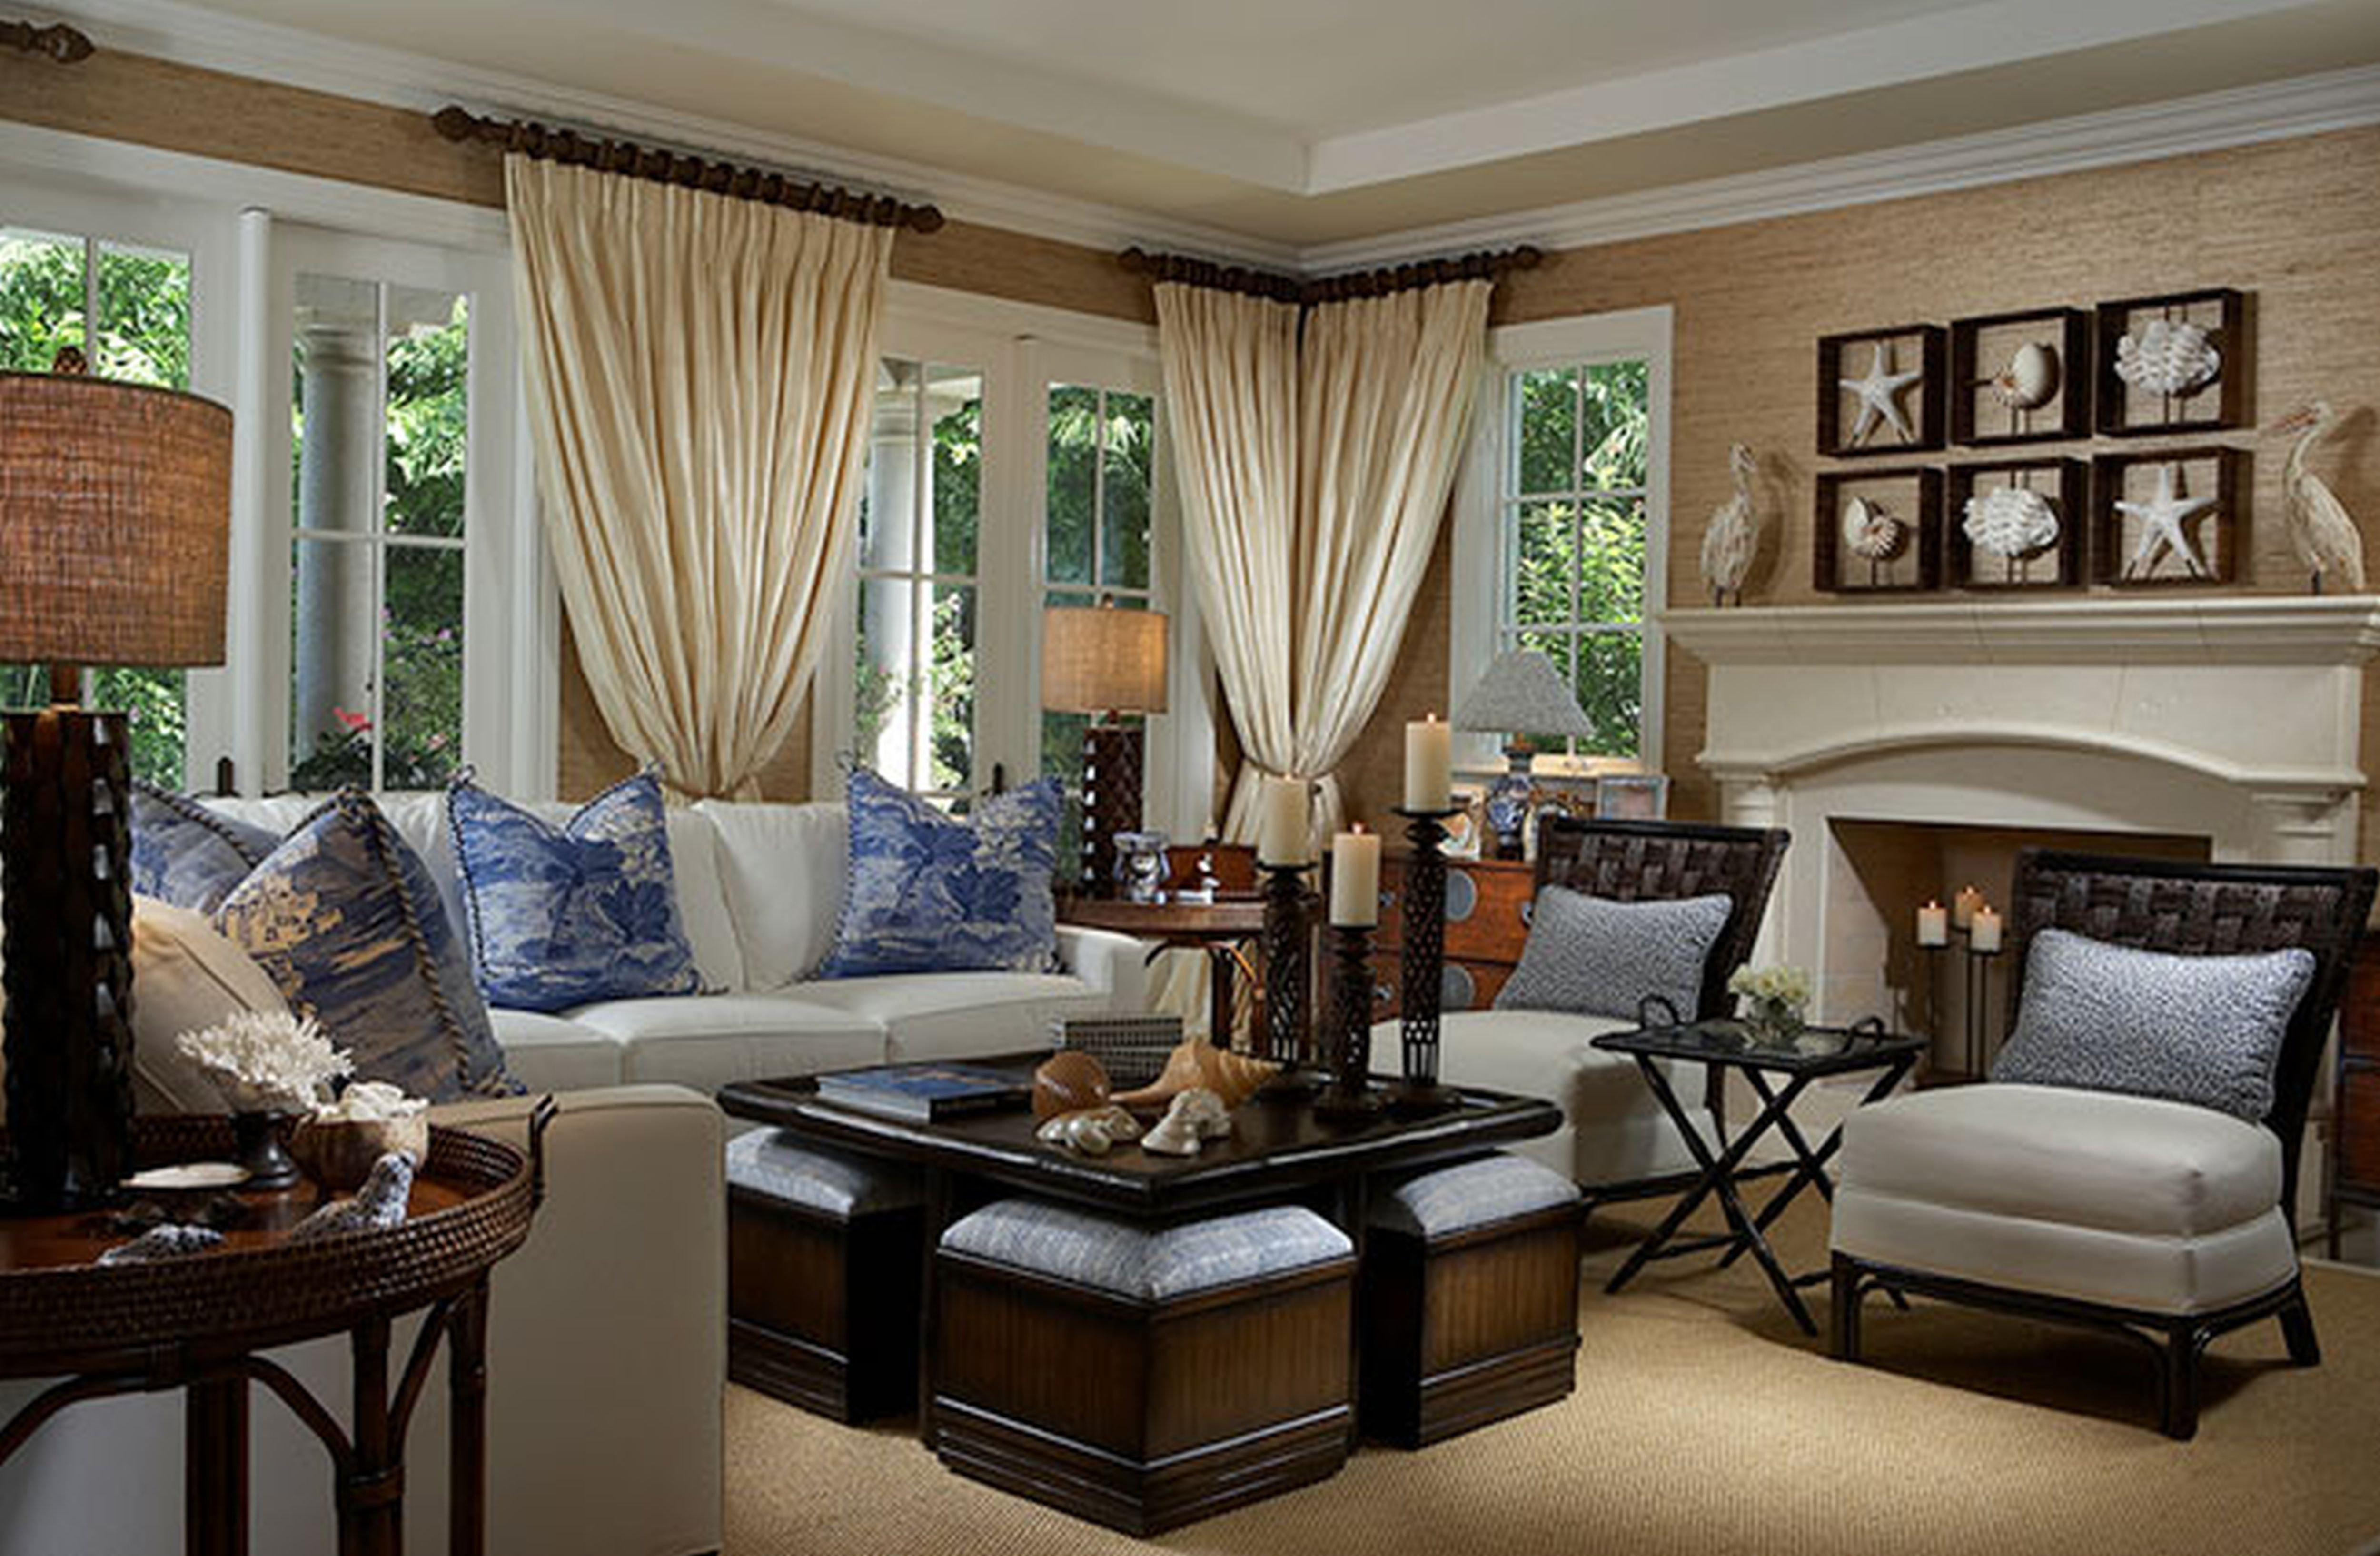 10 Fabulous Country Living Room Decorating Ideas country living room decorating ideas and with pretty images style 2020